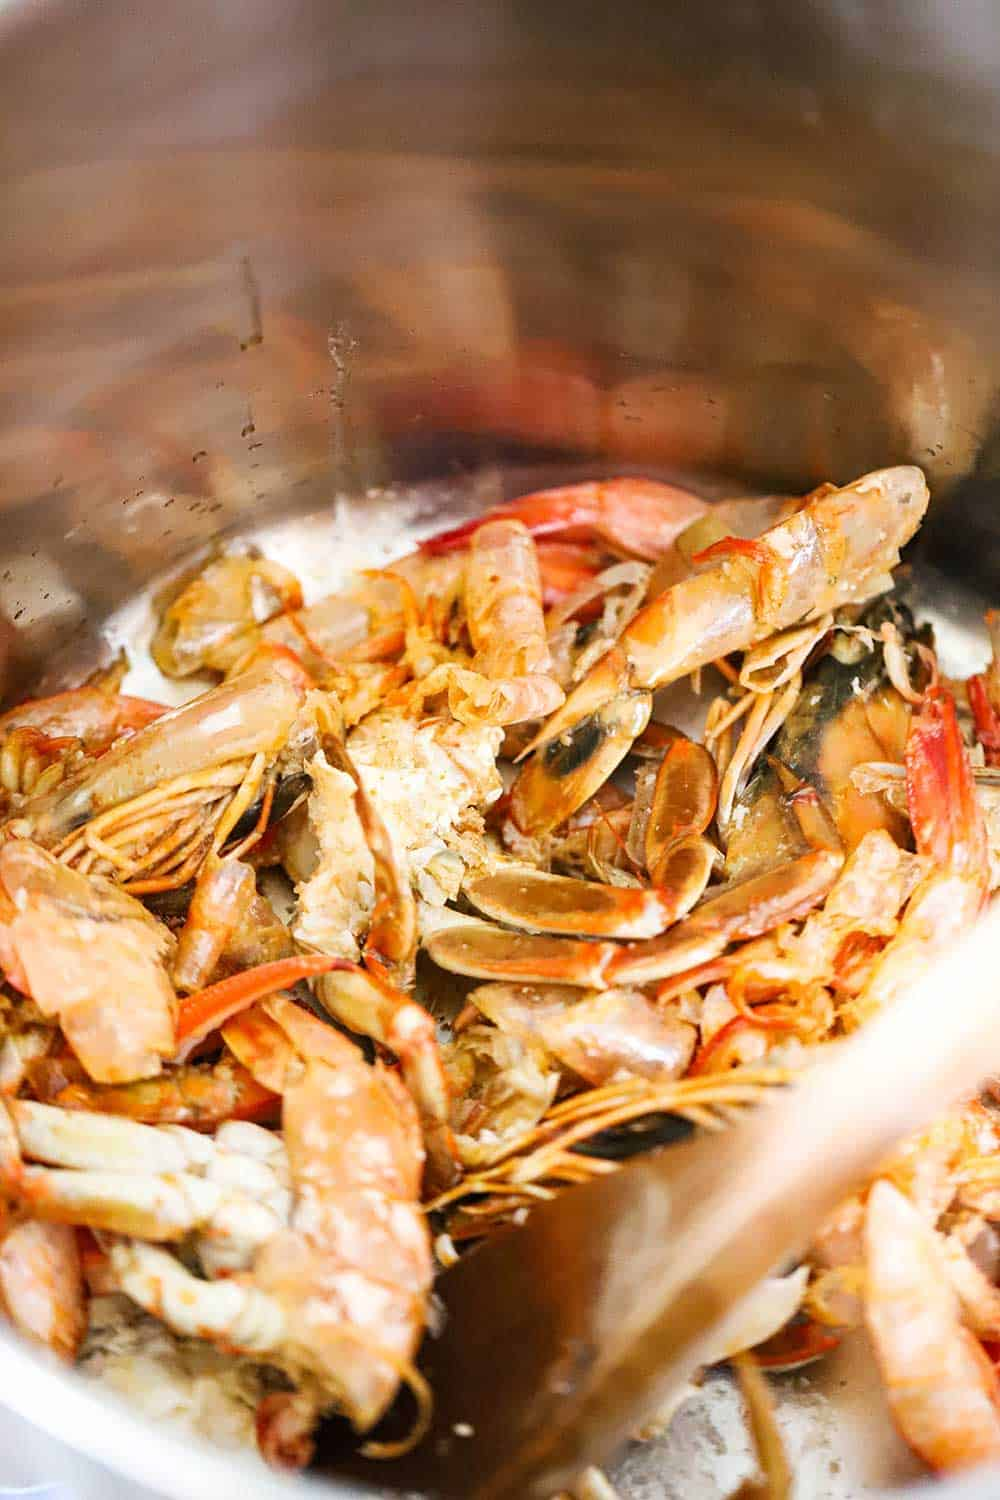 Shellfish shells being sautéed in a large stock pan with a wooden spoon in it.